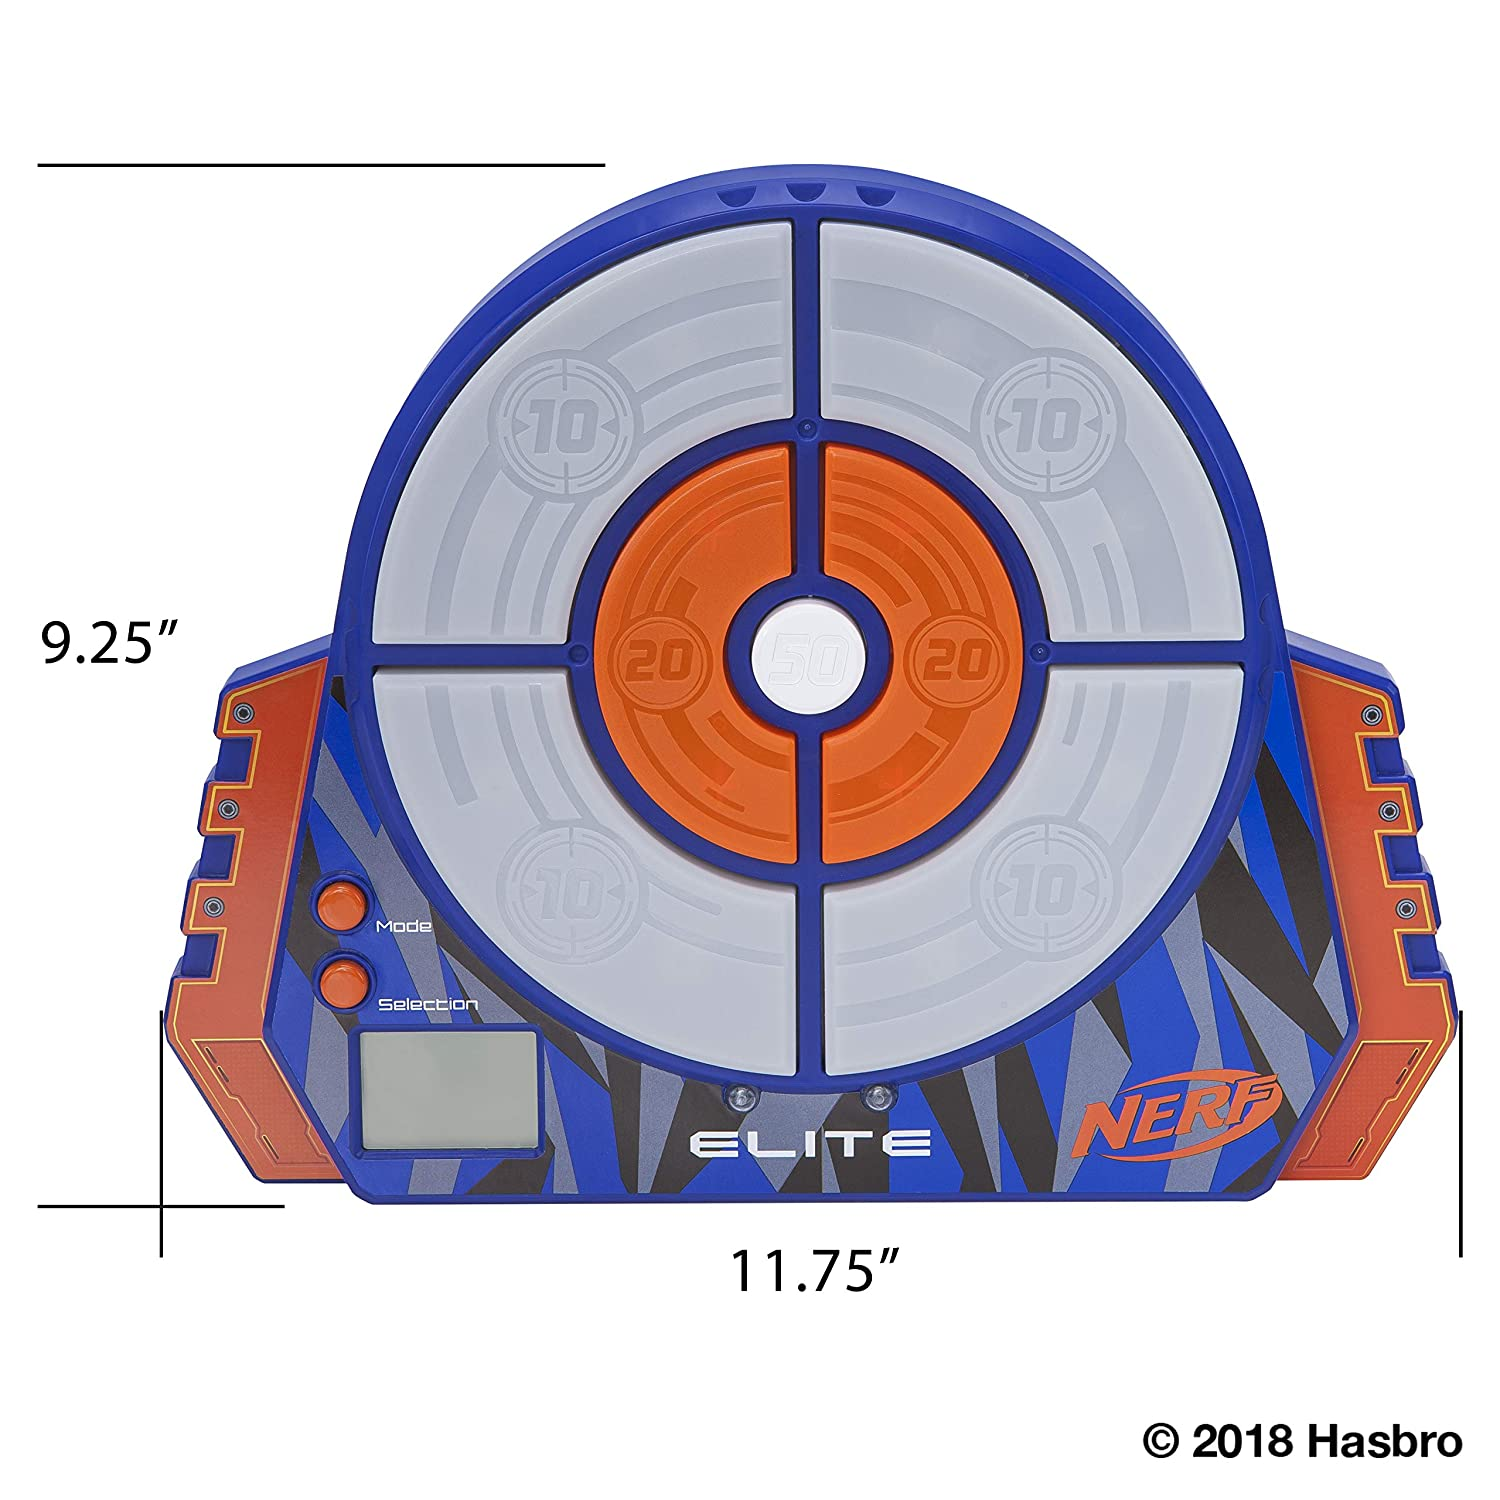 photo relating to Nerf Targets Printable called NERF Elite Electronic Concentrate Toy, Common